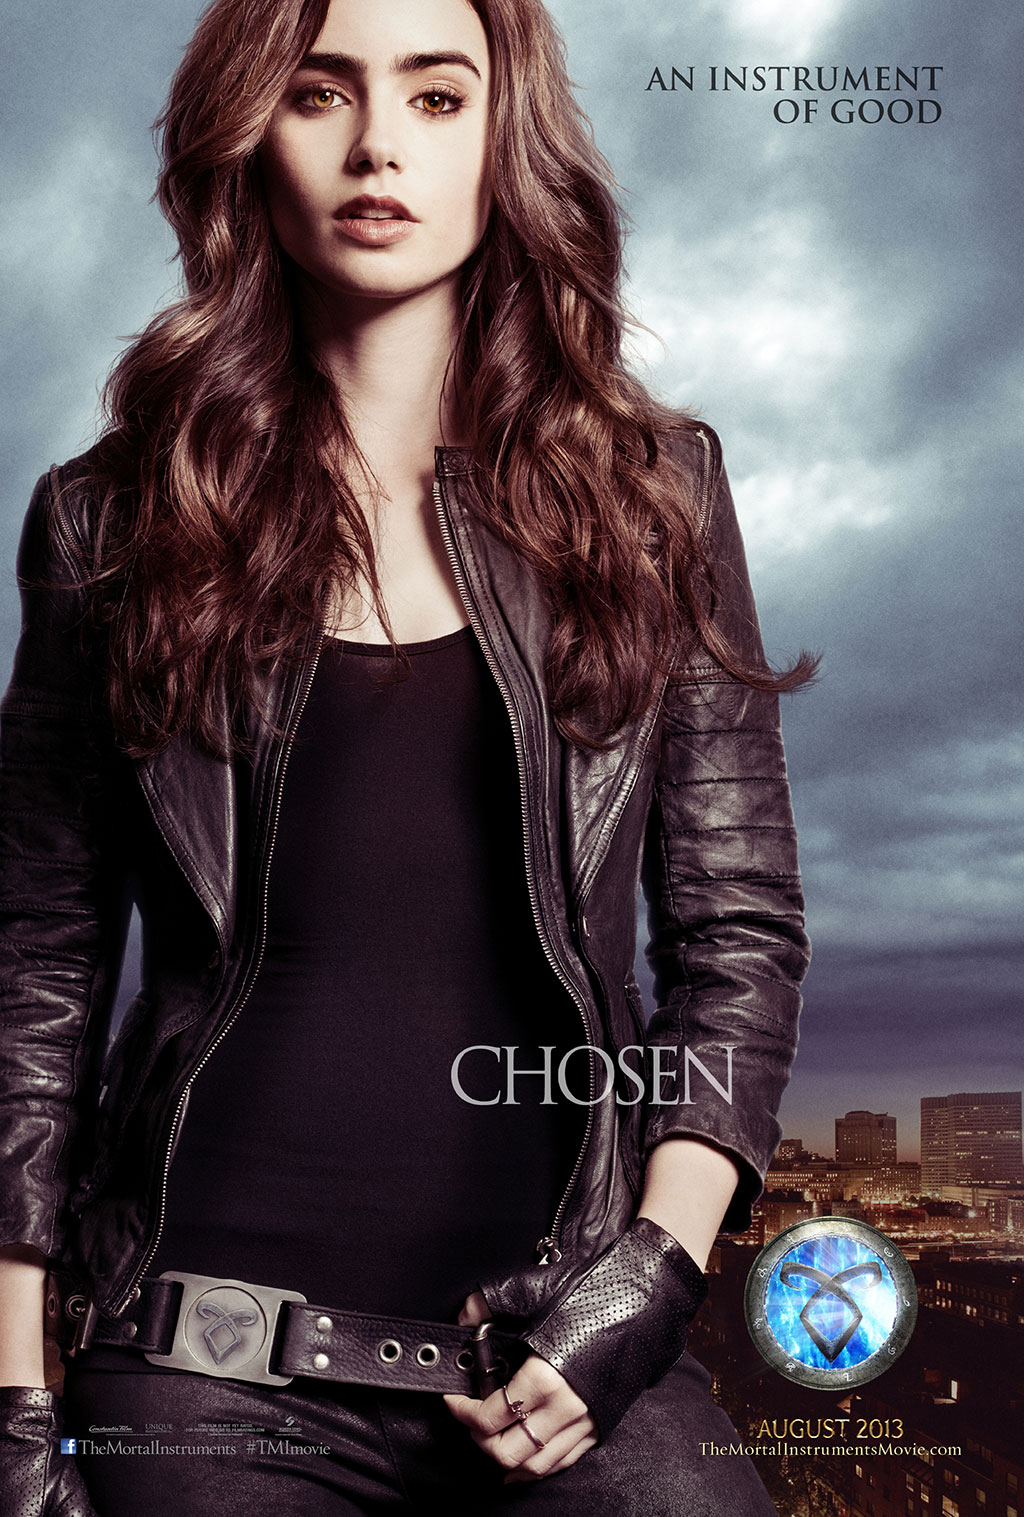 'The Mortal Instruments: City of Bones' character poster ...